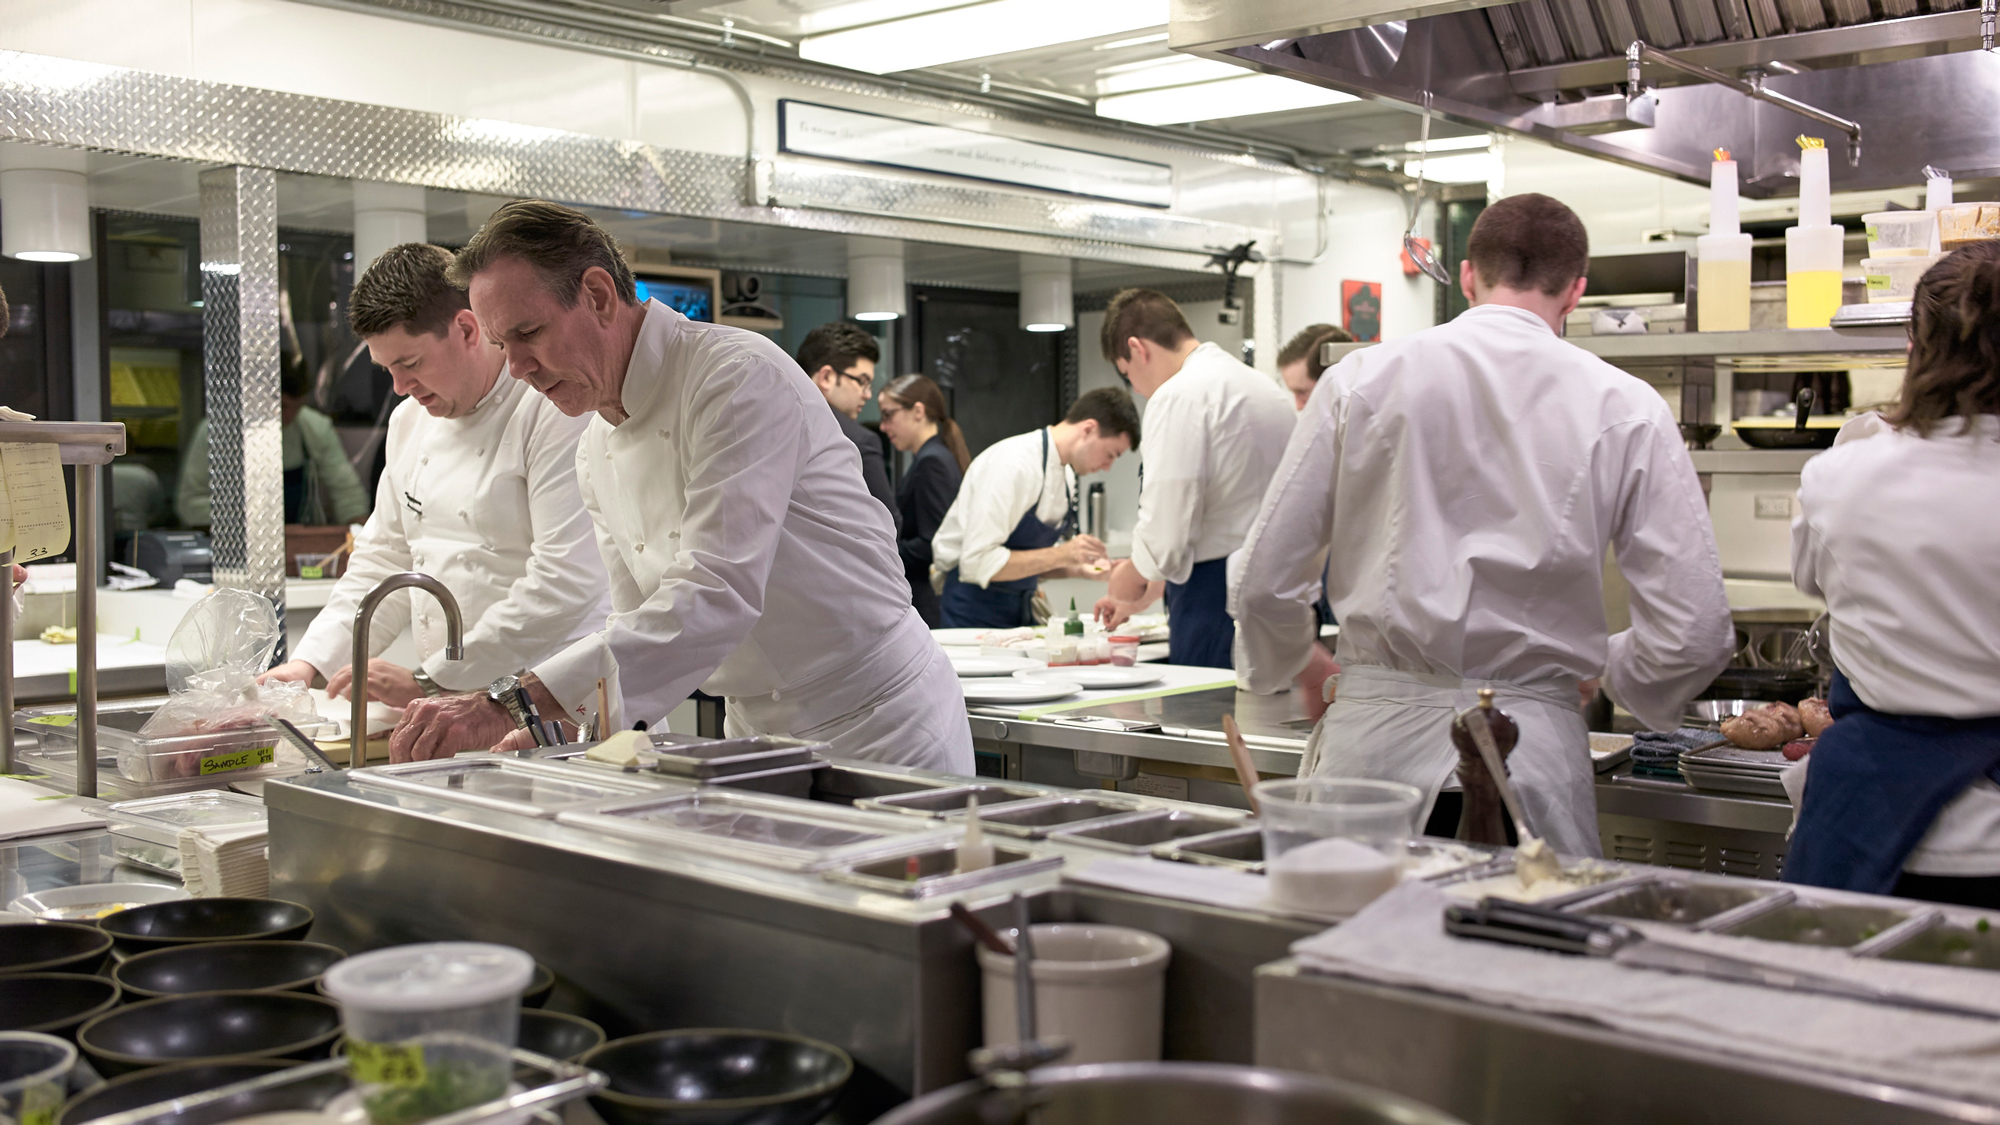 Now's Your Chance to Own the French Laundry's Temporary Kitchen